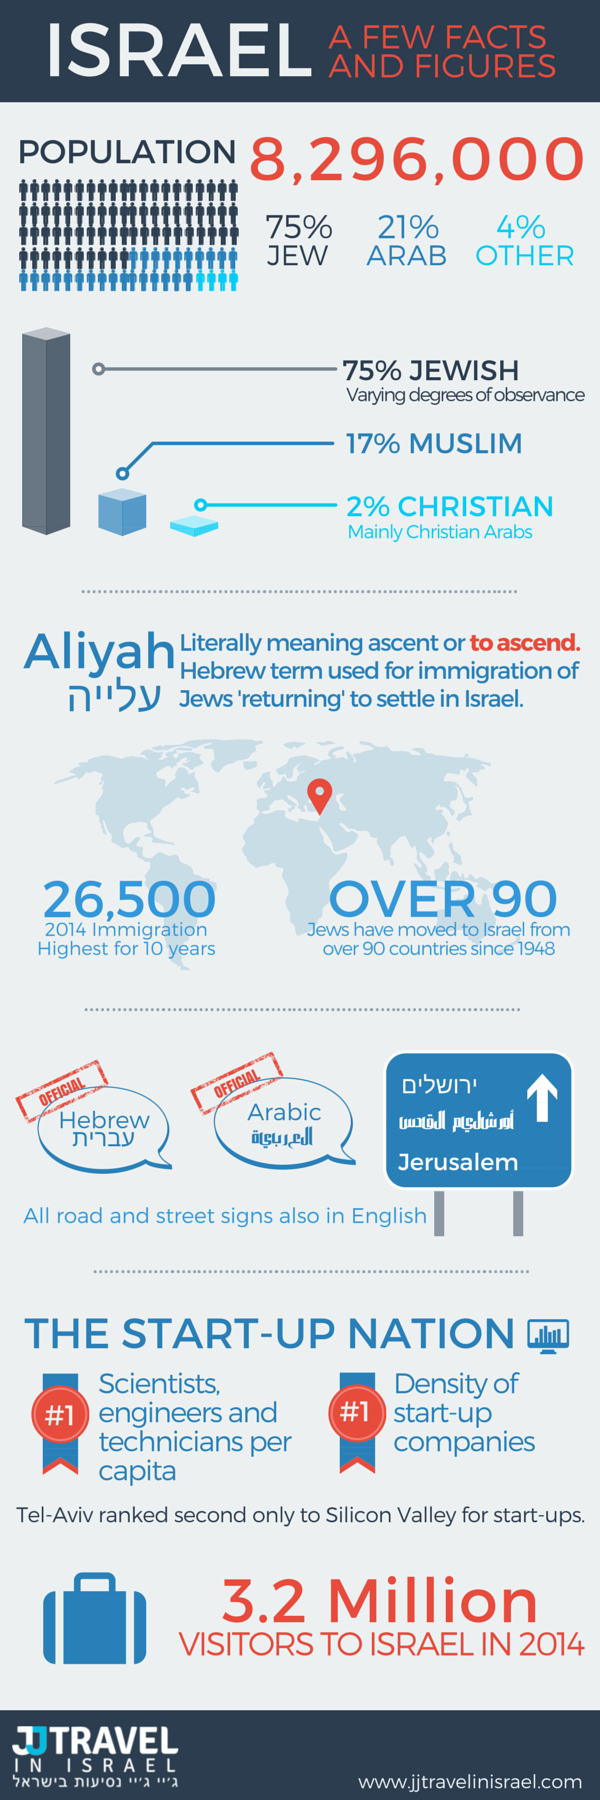 Israel Today Infographic 2015